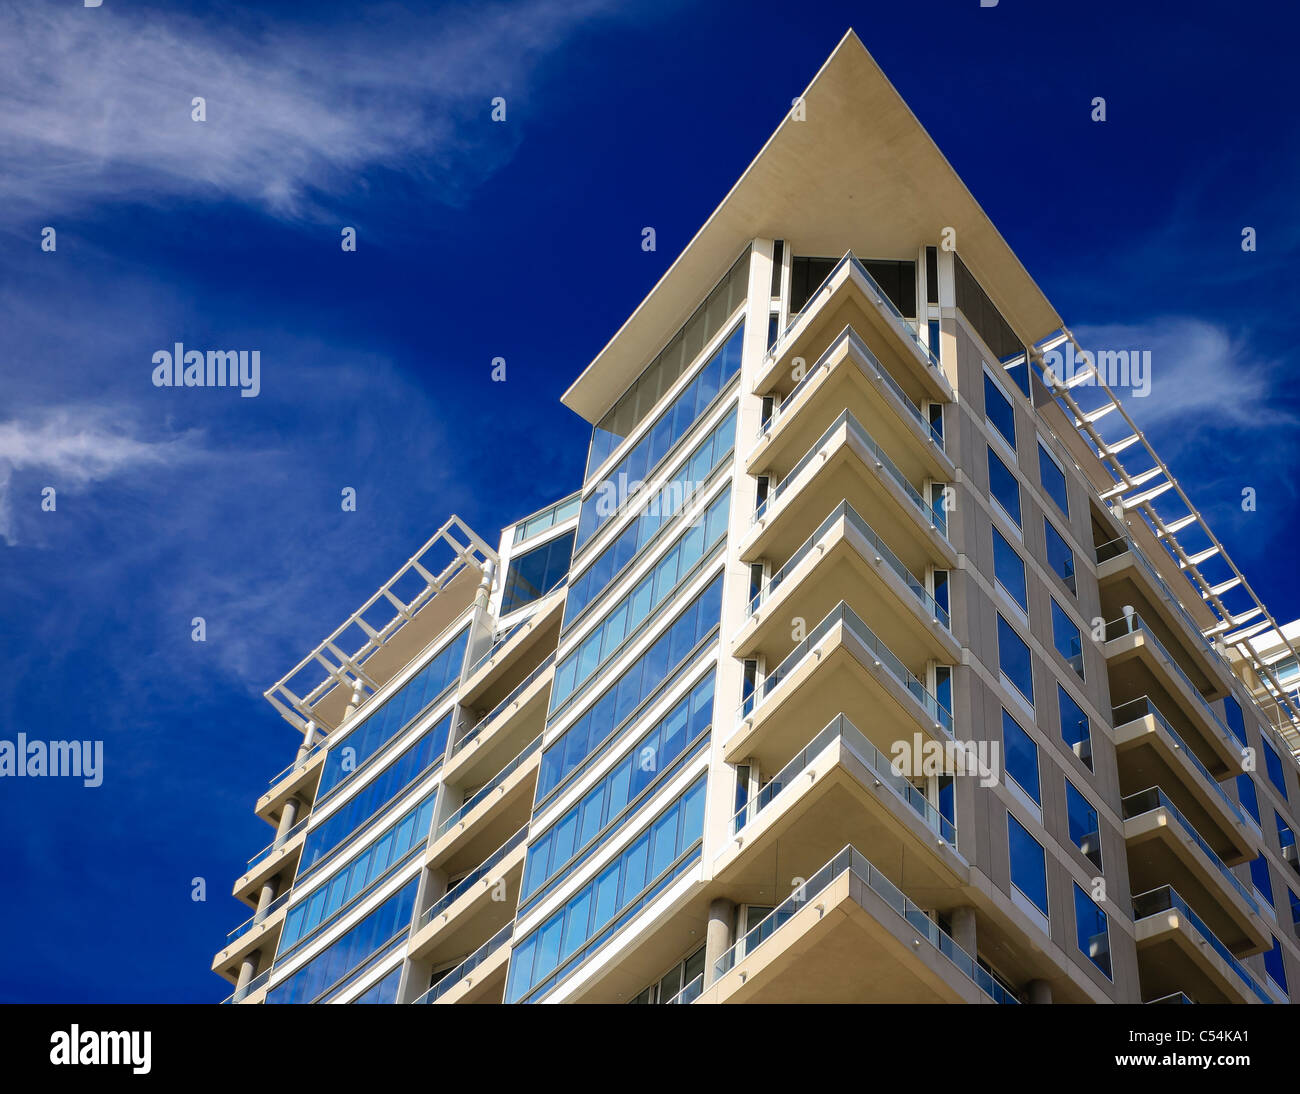 A high-end residential building with glass balconies shoot against a deep blue sky with dramatic clouds. Stock Photo